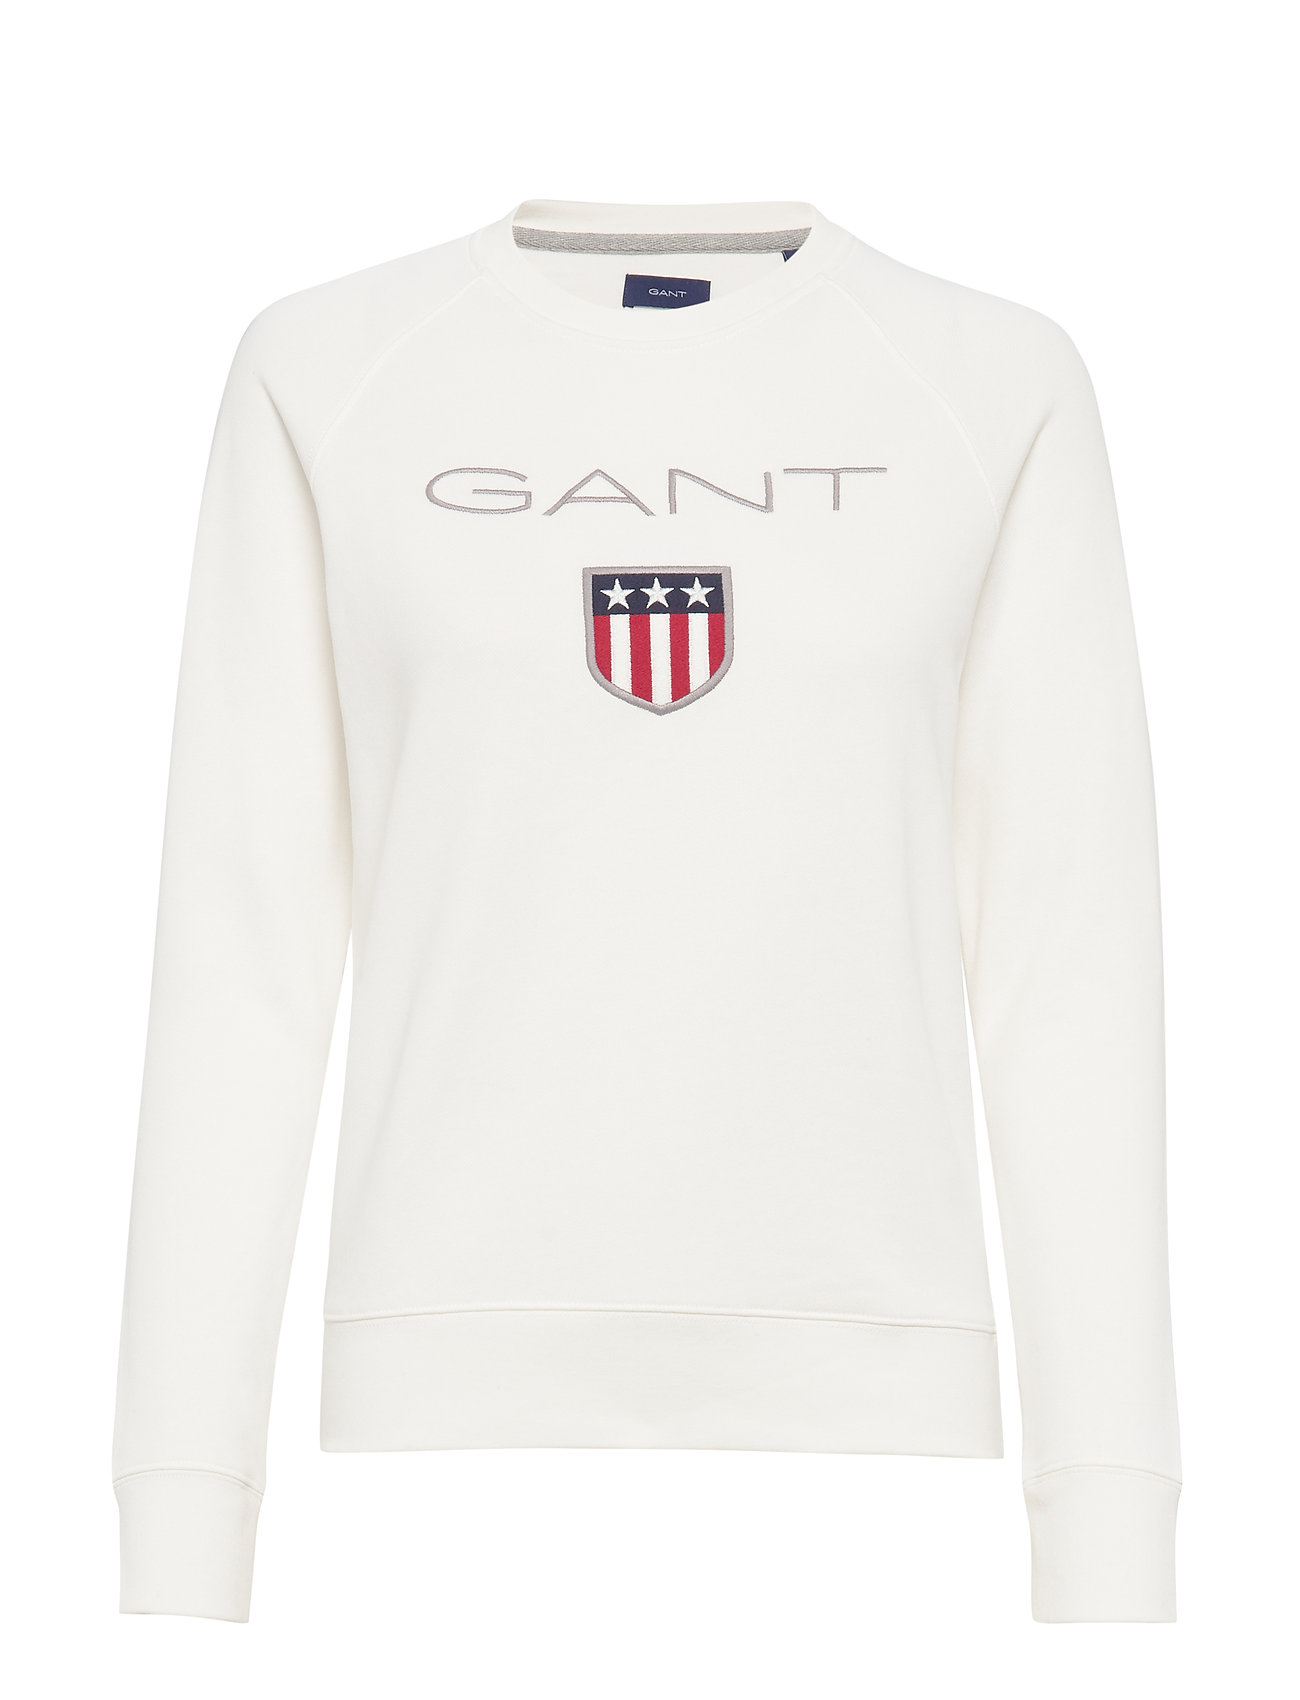 GANT GANT SHIELD LOGO C-NECK SWEAT - EGGSHELL